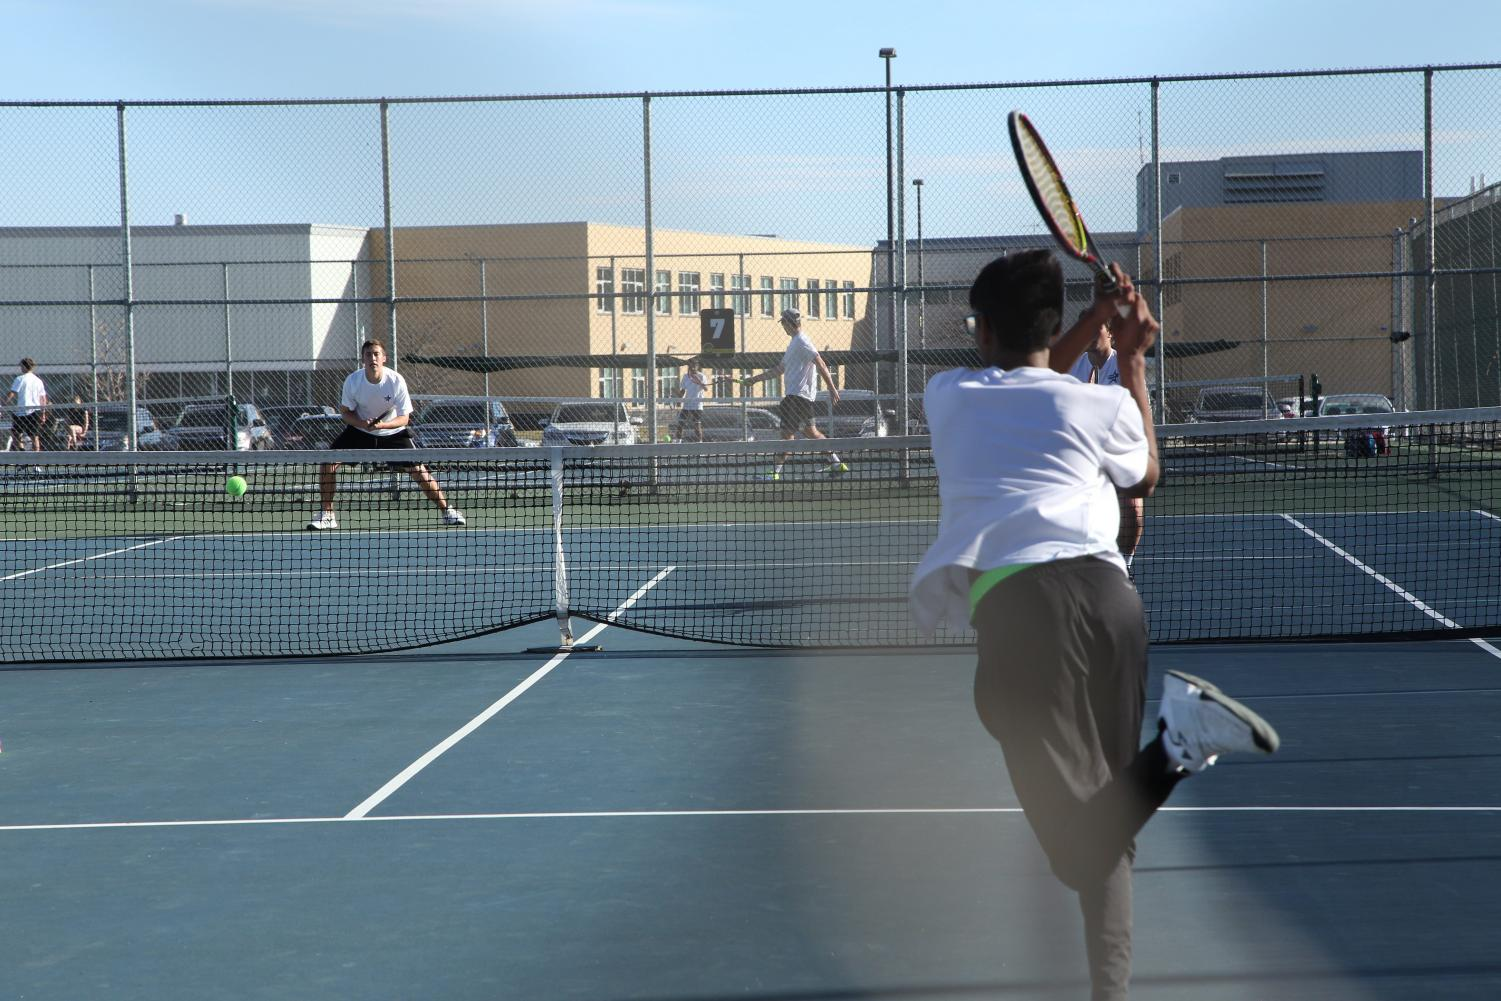 The Mustangs fought a close match against St. Charles North, ending the game 3-4.